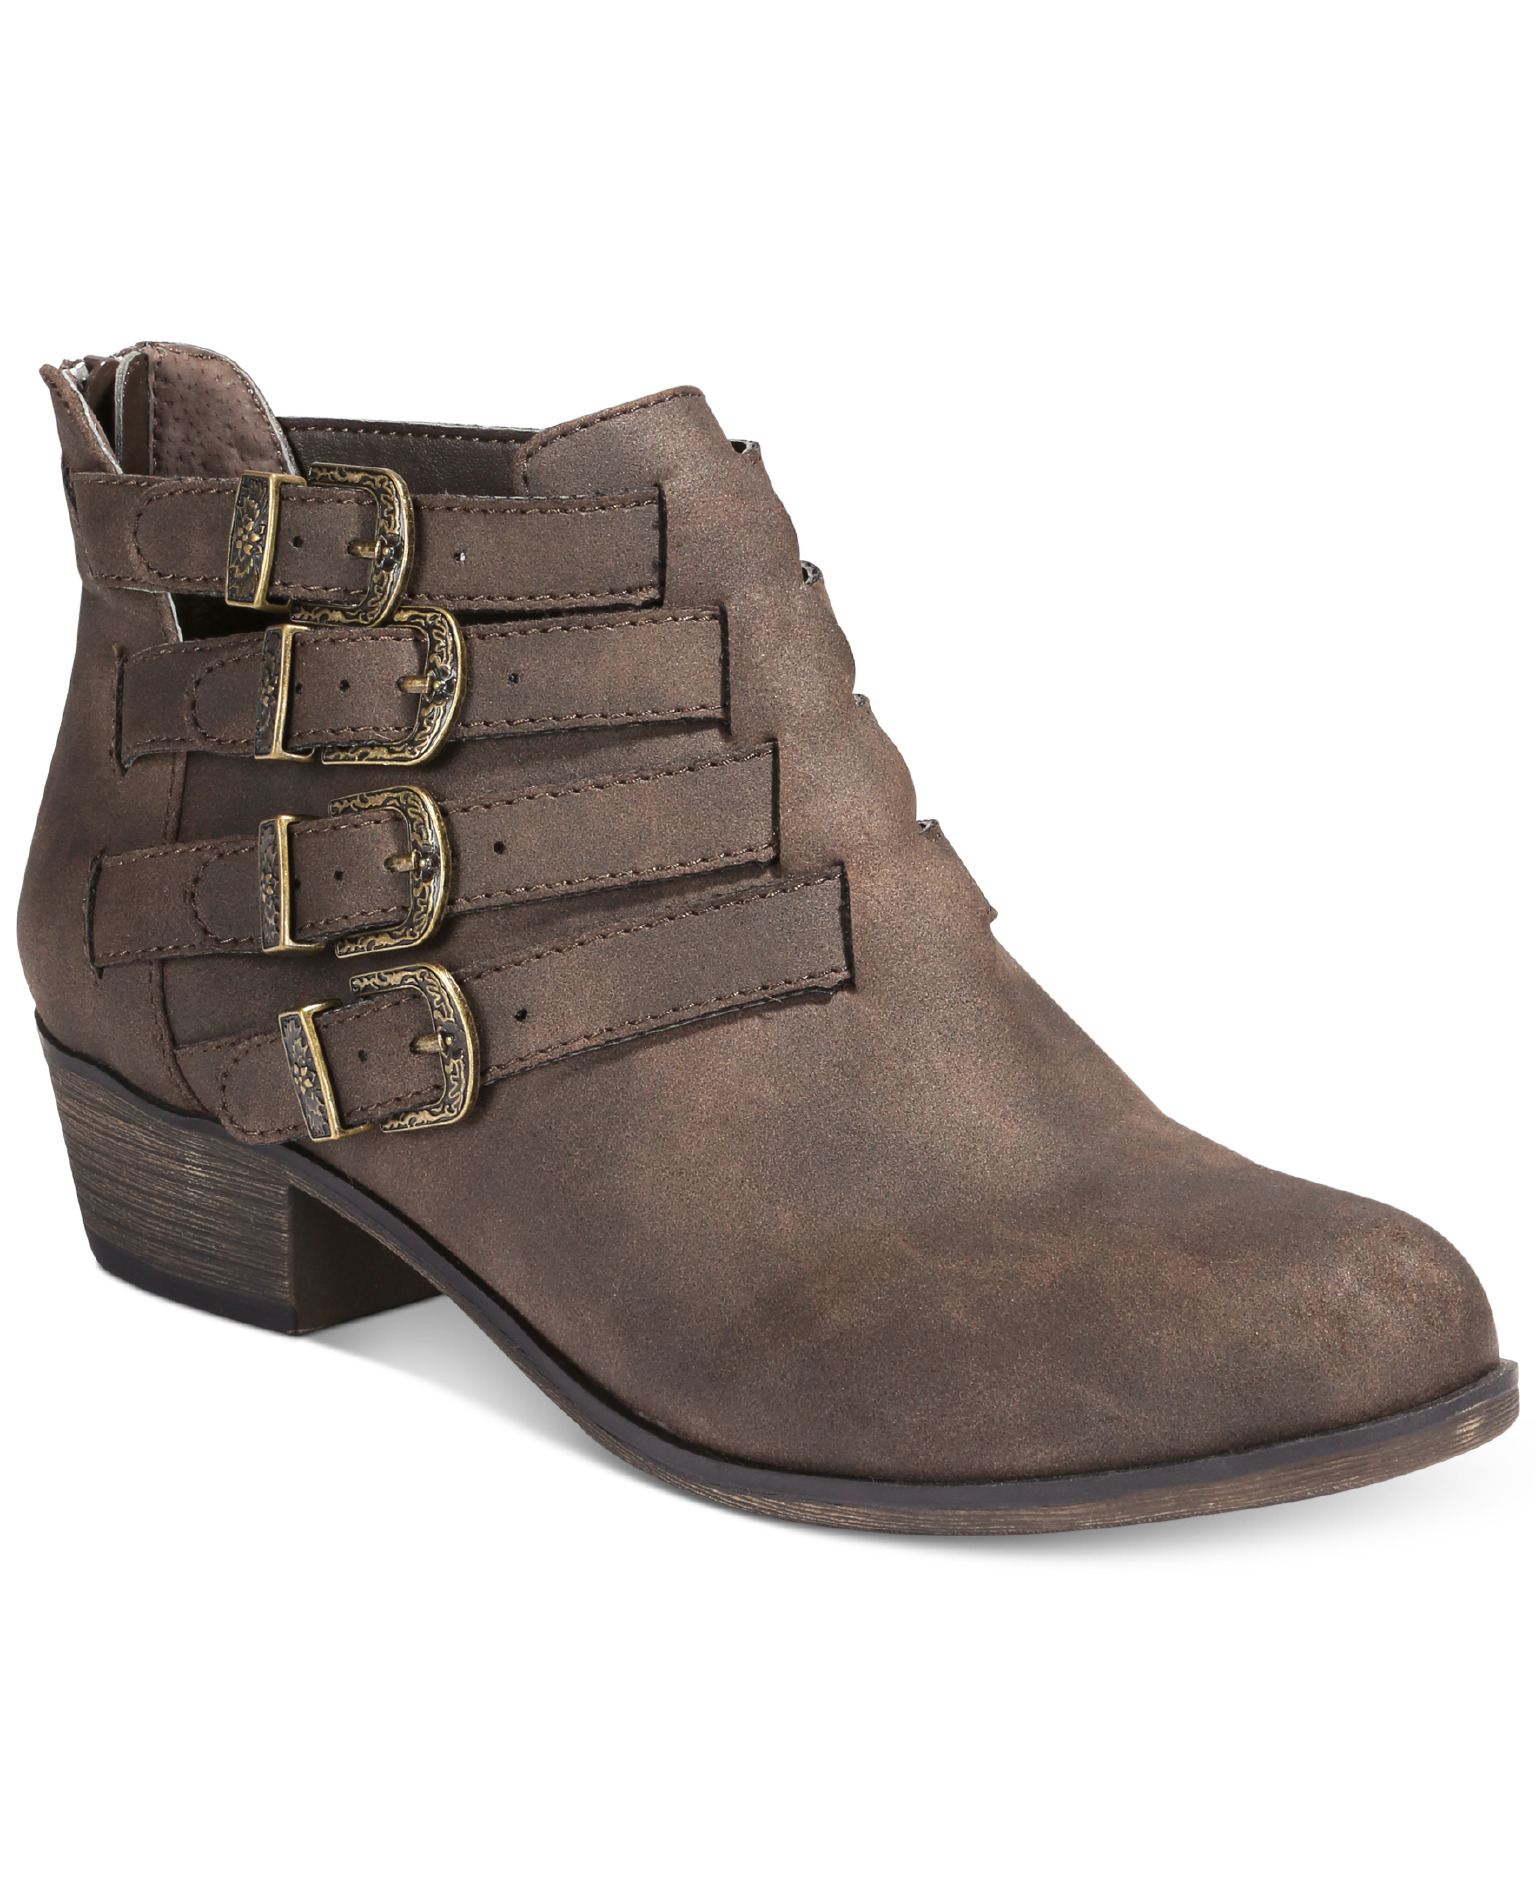 American Rag Darie Ankle Booties from Macy's - on sale for $34.73, originally $69.50 // macys.com (Photo courtesy: Macy's)<p></p>